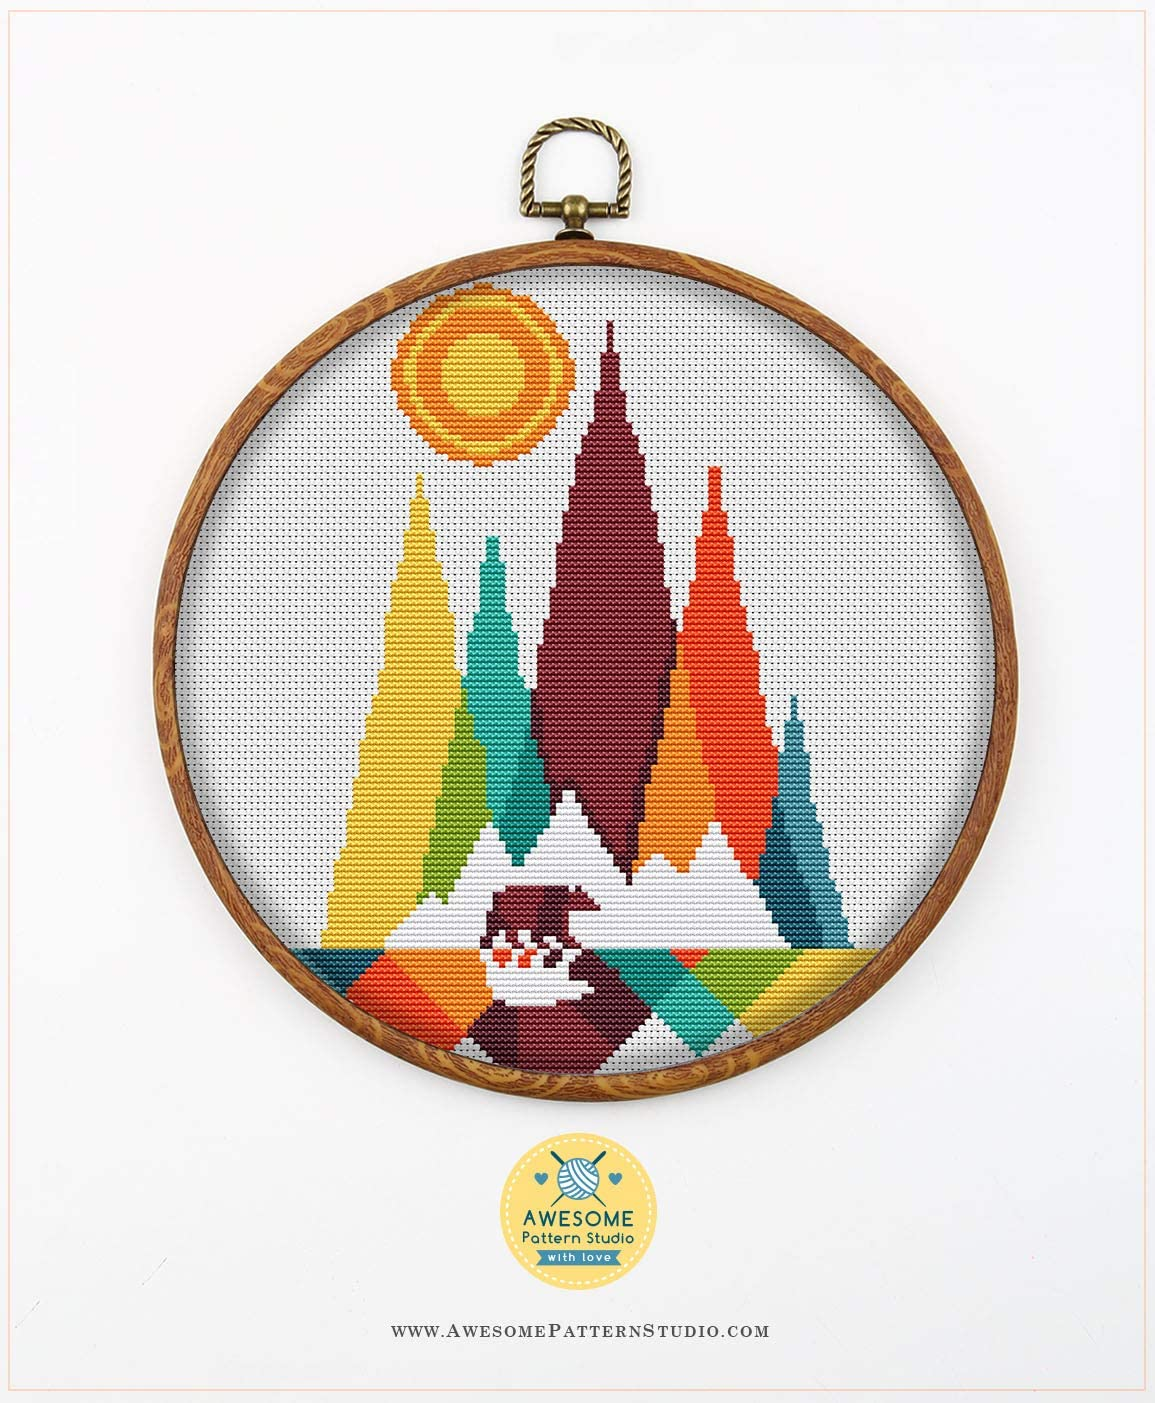 Embroidery Pattern Kit Threads Fabrick and 4 Printed Color Schemes Inside Needles Rocky Mountain National Park Square K465 Counted Cross Stitch KIT#2